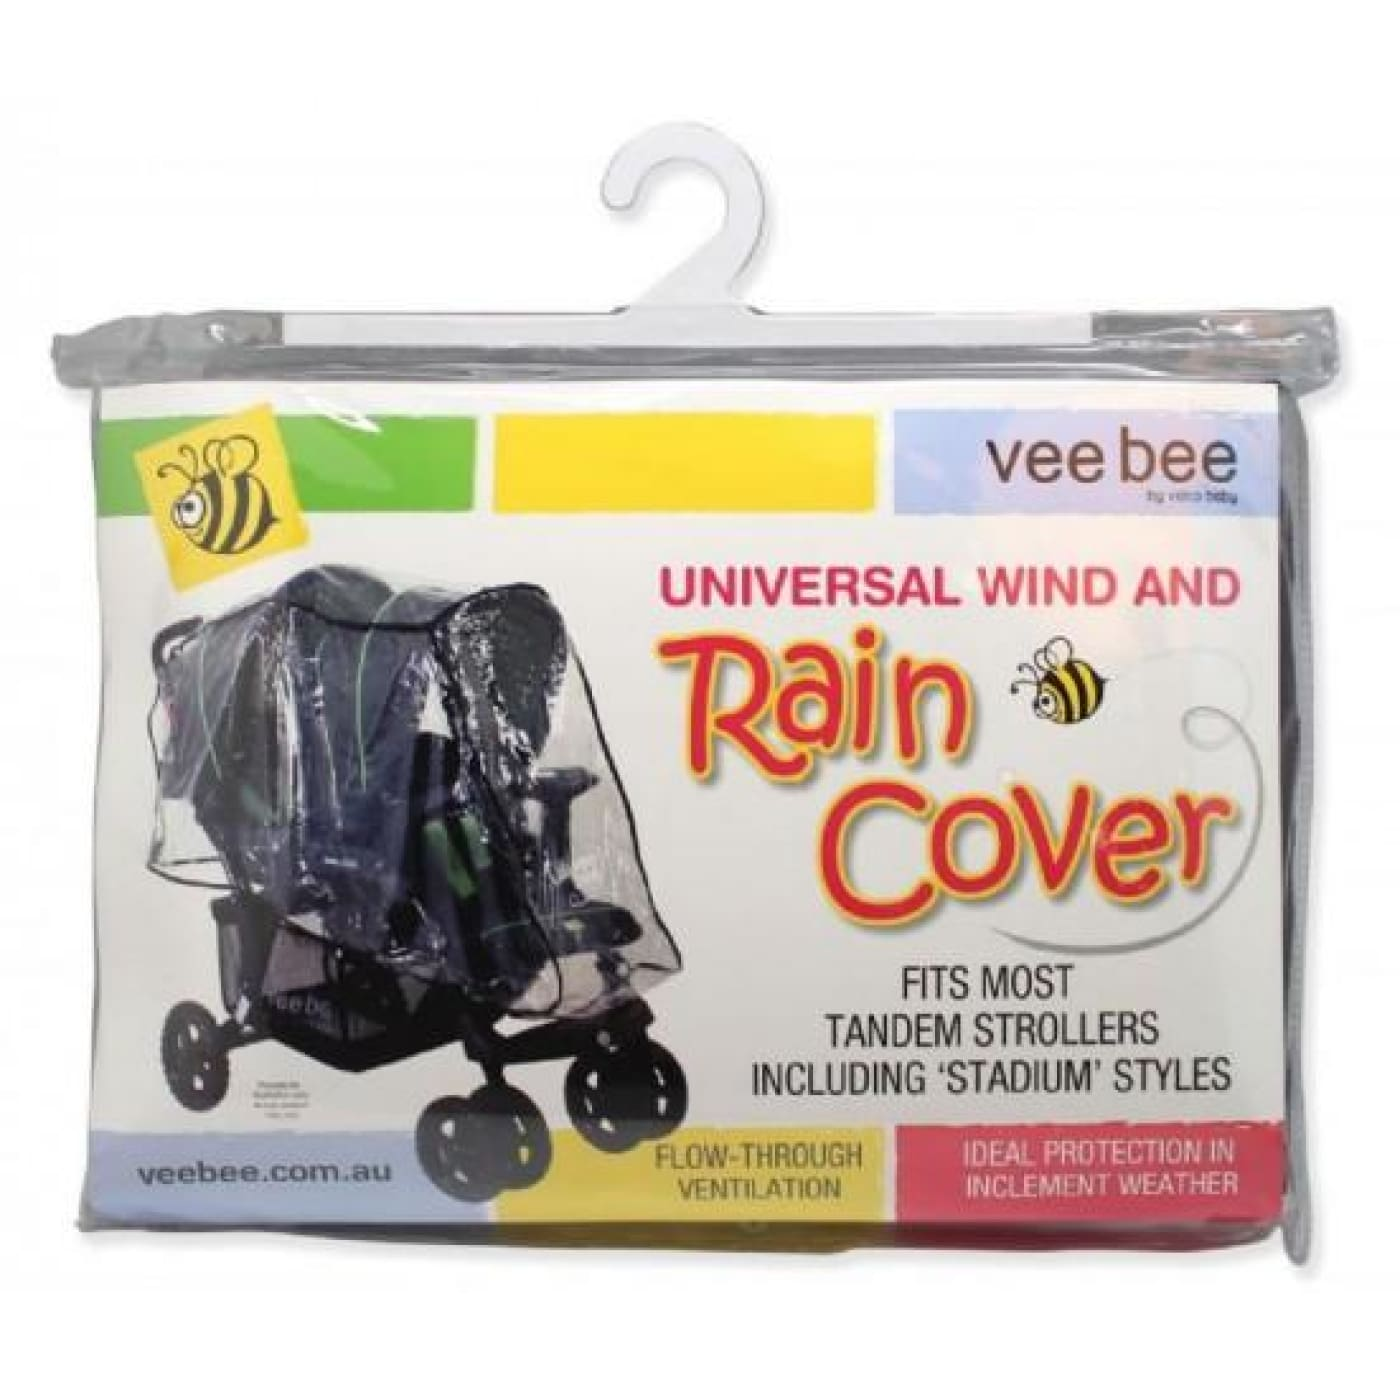 Veebee Raincover Tandem with Dual Hoods - PRAMS & STROLLERS - SUN COVERS/WEATHER SHIELDS